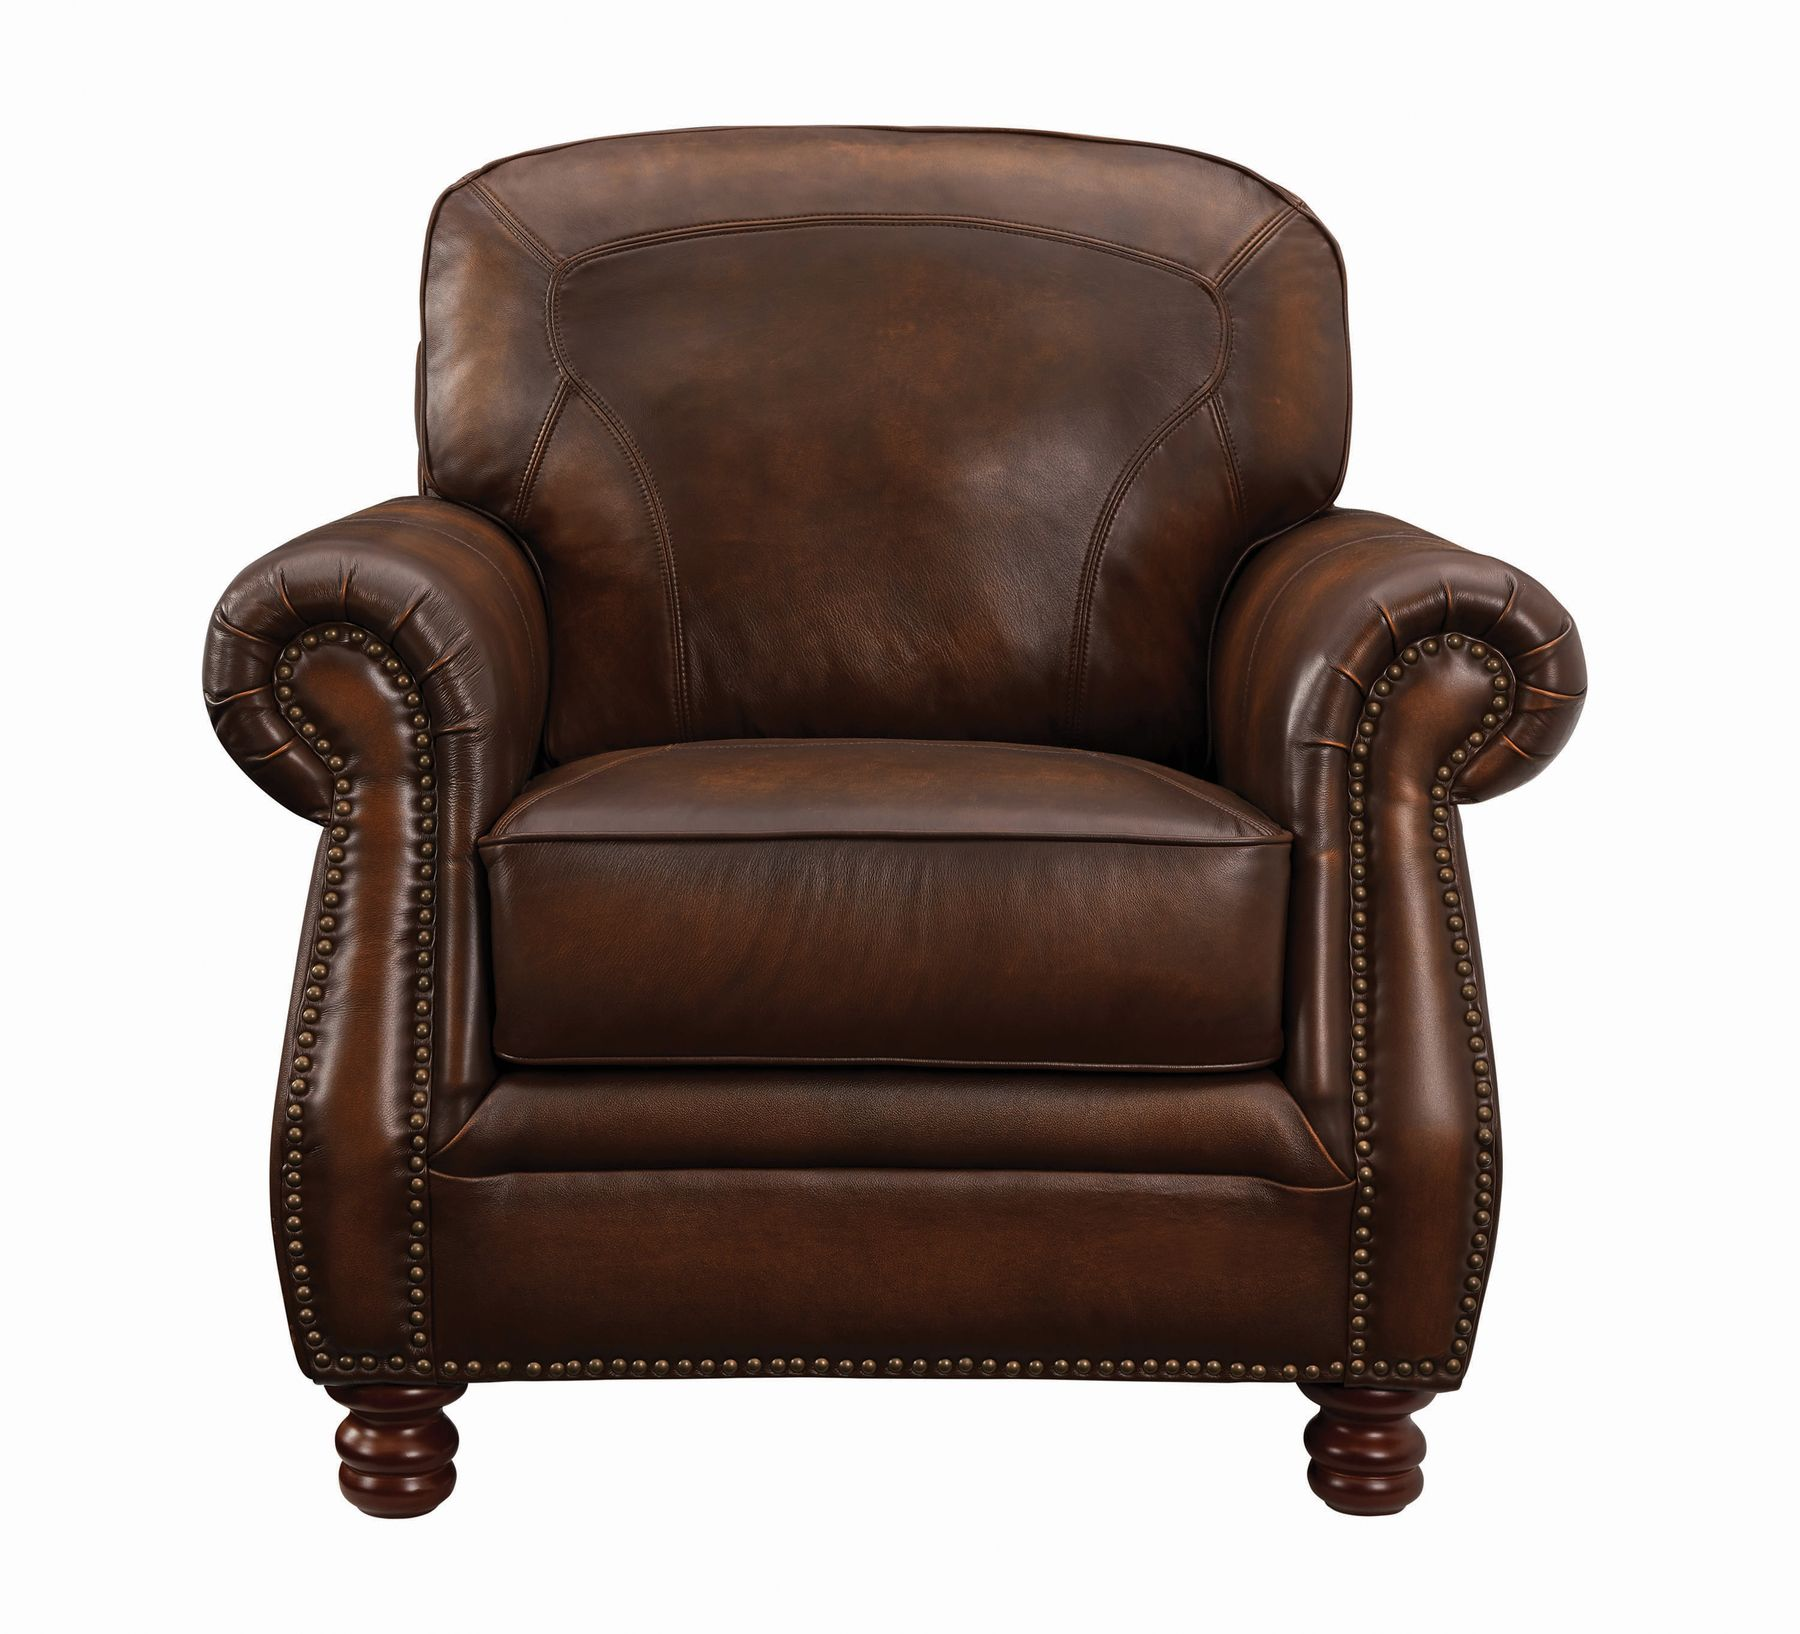 Montbrook Chair 503983 Coaster Furniture Chairs In 2021 Rolled Arm Chair Brown Armchair Stylish Chairs